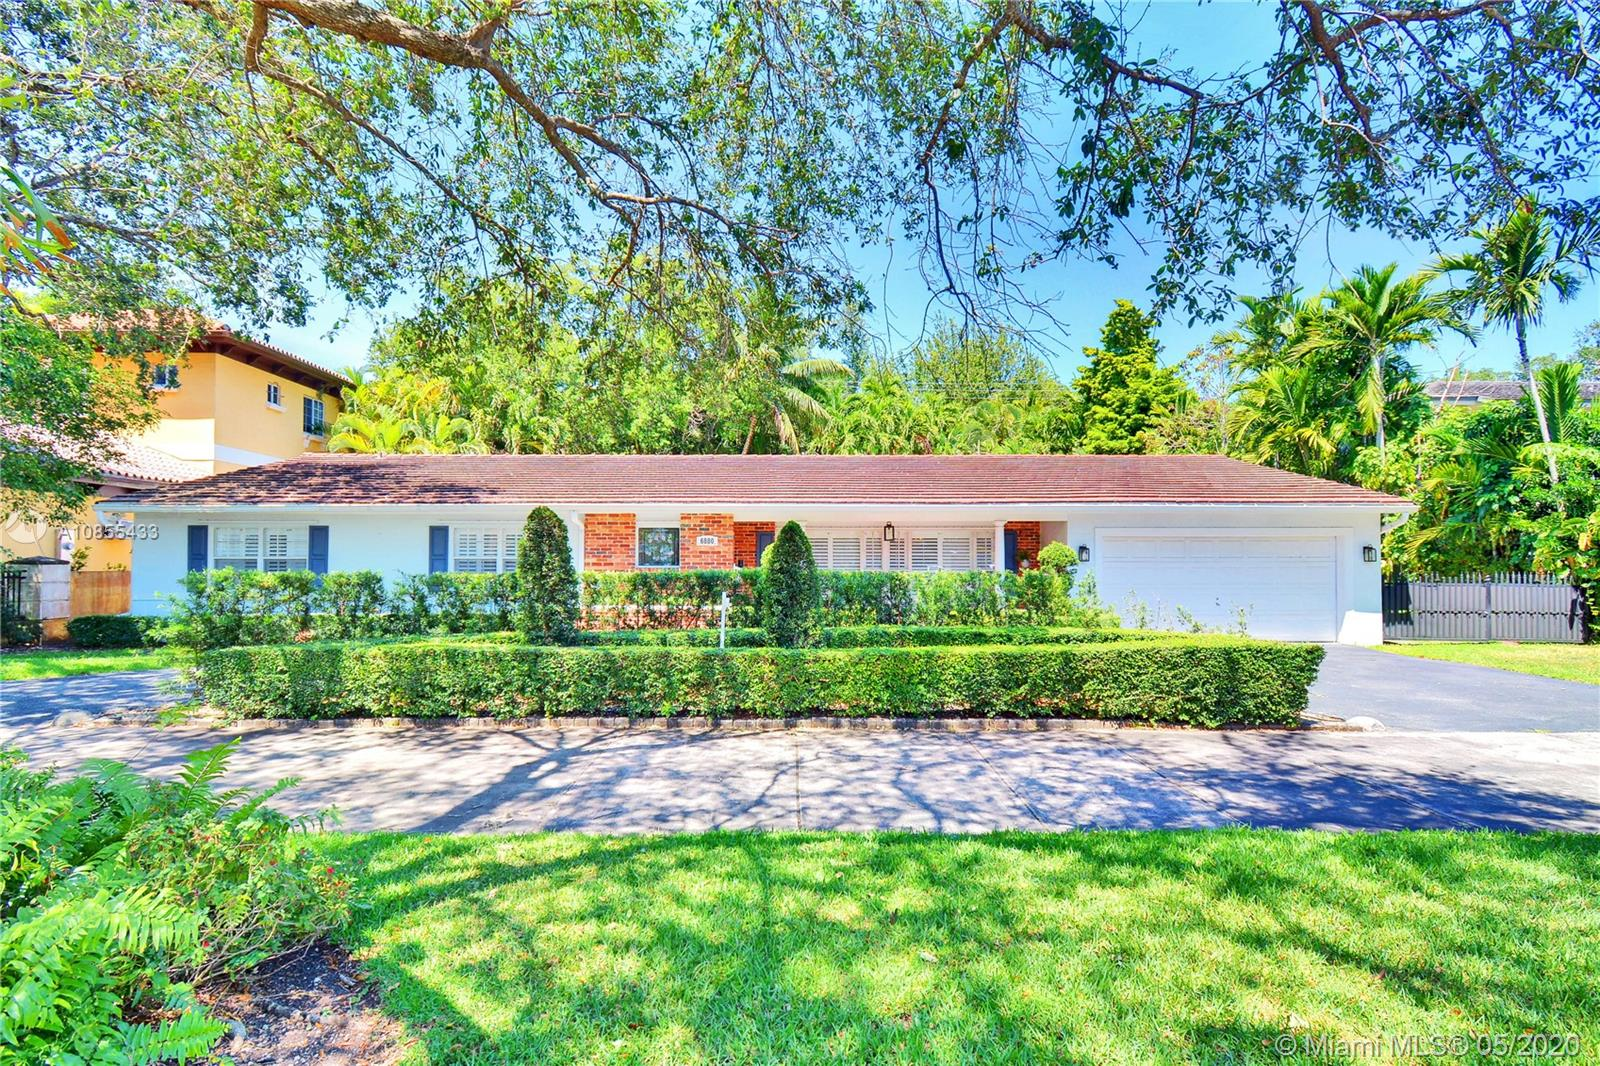 6880 Maynada St, Coral Gables, Florida 33146, 5 Bedrooms Bedrooms, ,3 BathroomsBathrooms,Residential,For Sale,6880 Maynada St,A10855433